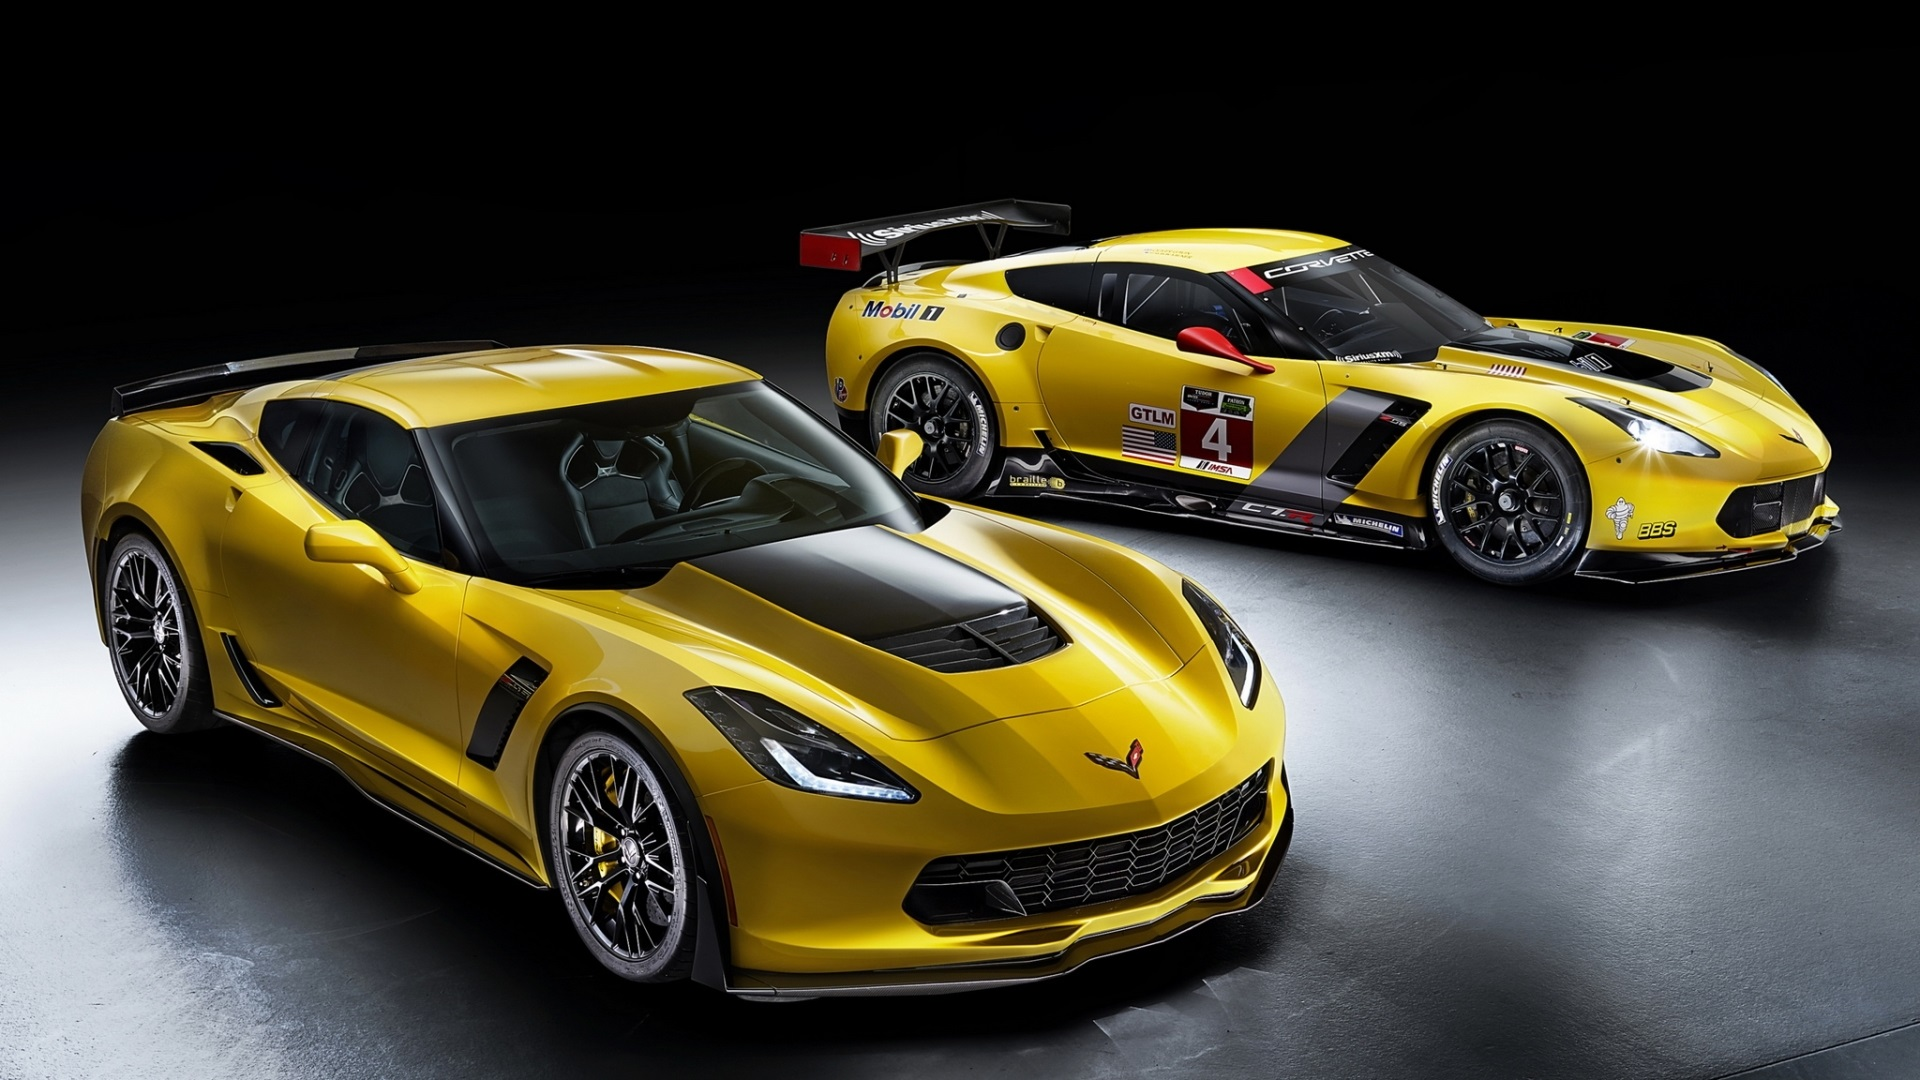 Corvette Stingray Wallpaper No 1 Wallpaper Hd